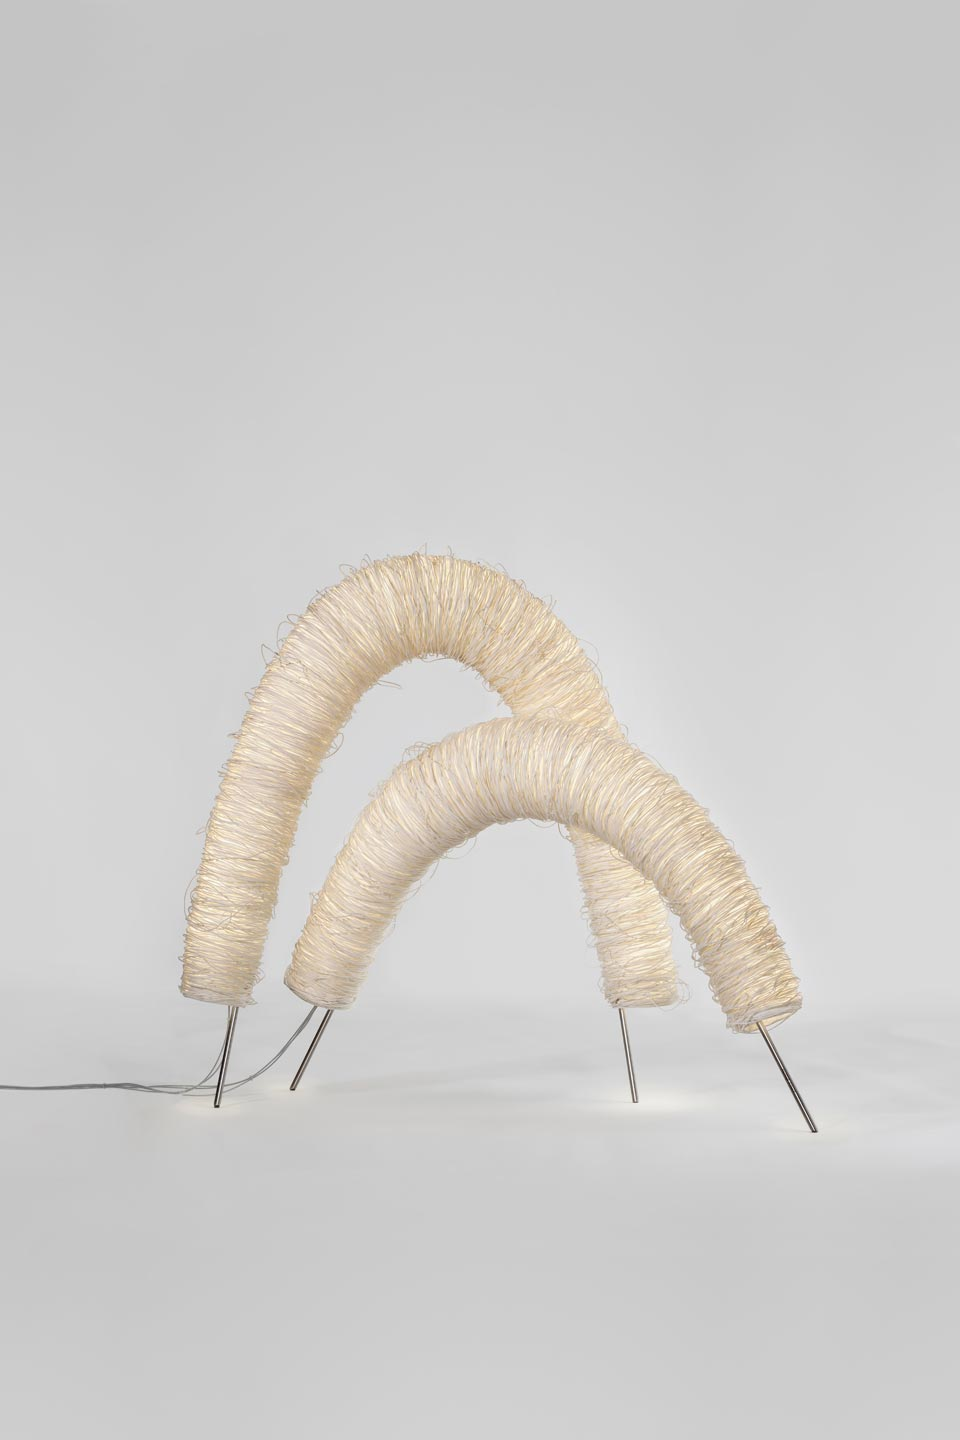 Arc duo de lampes de table en corde de cellulose blanche. Arturo Alvarez.